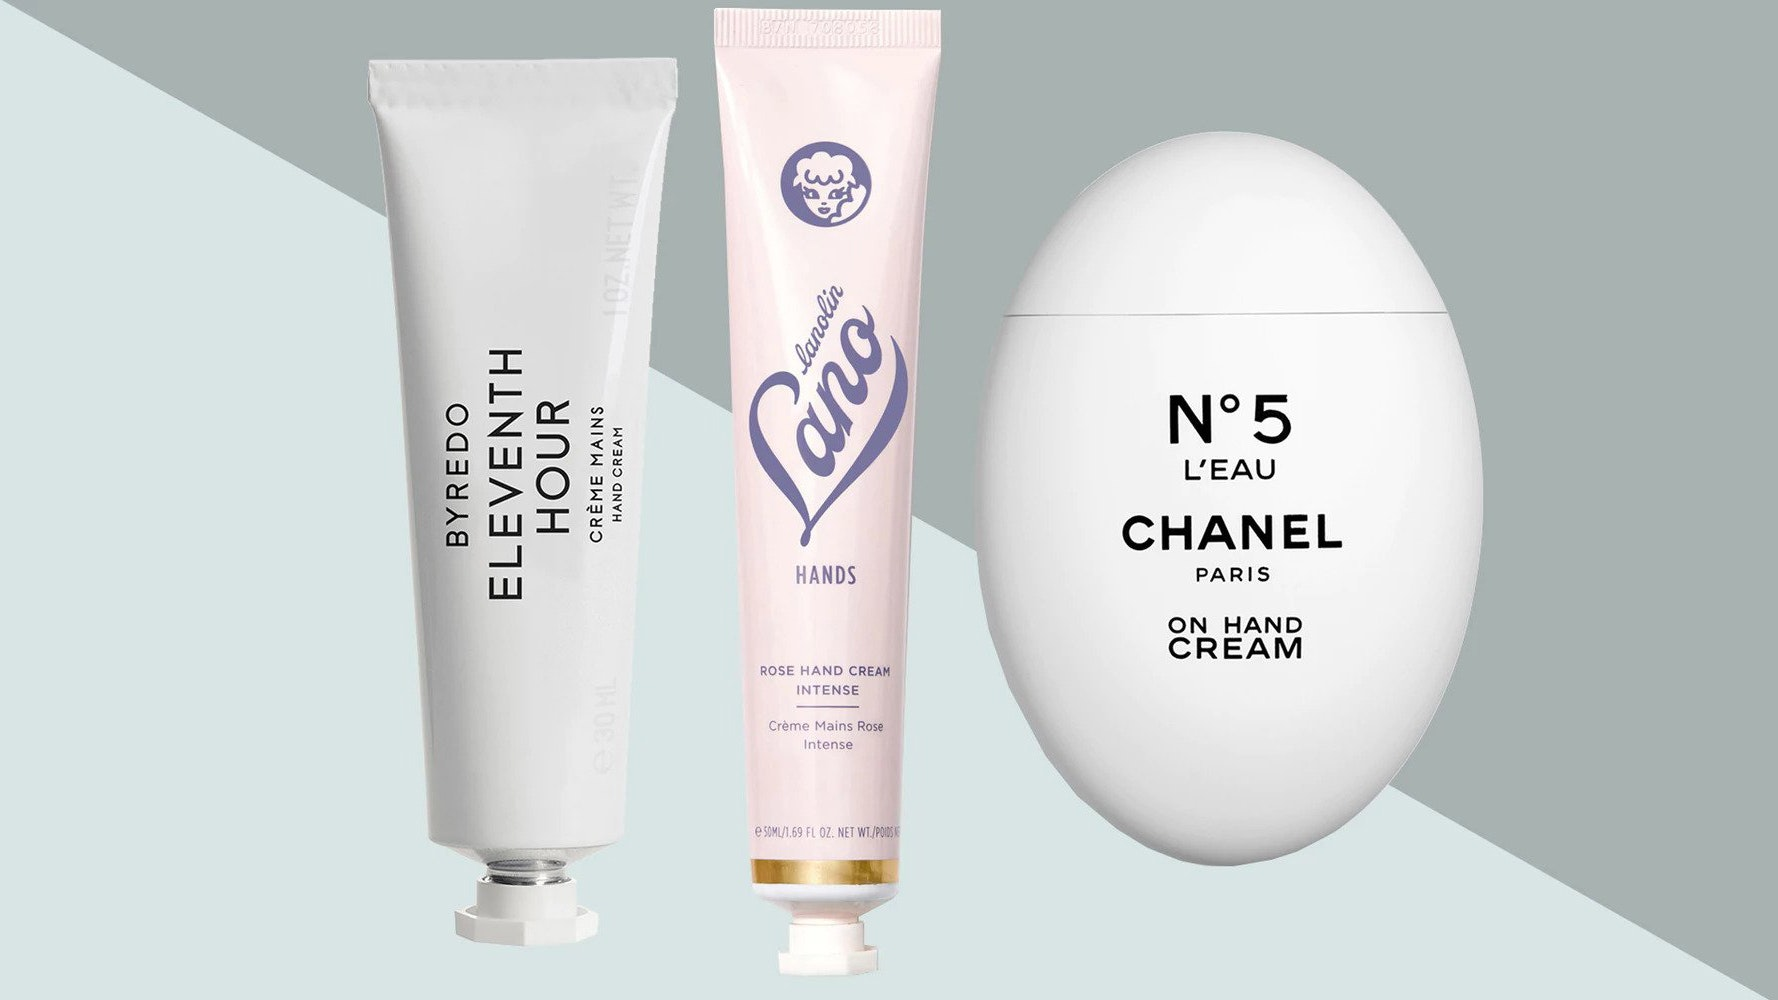 Spotlyte 7: The Most Gorgeous Hand Creams to Ward off Winter Skin